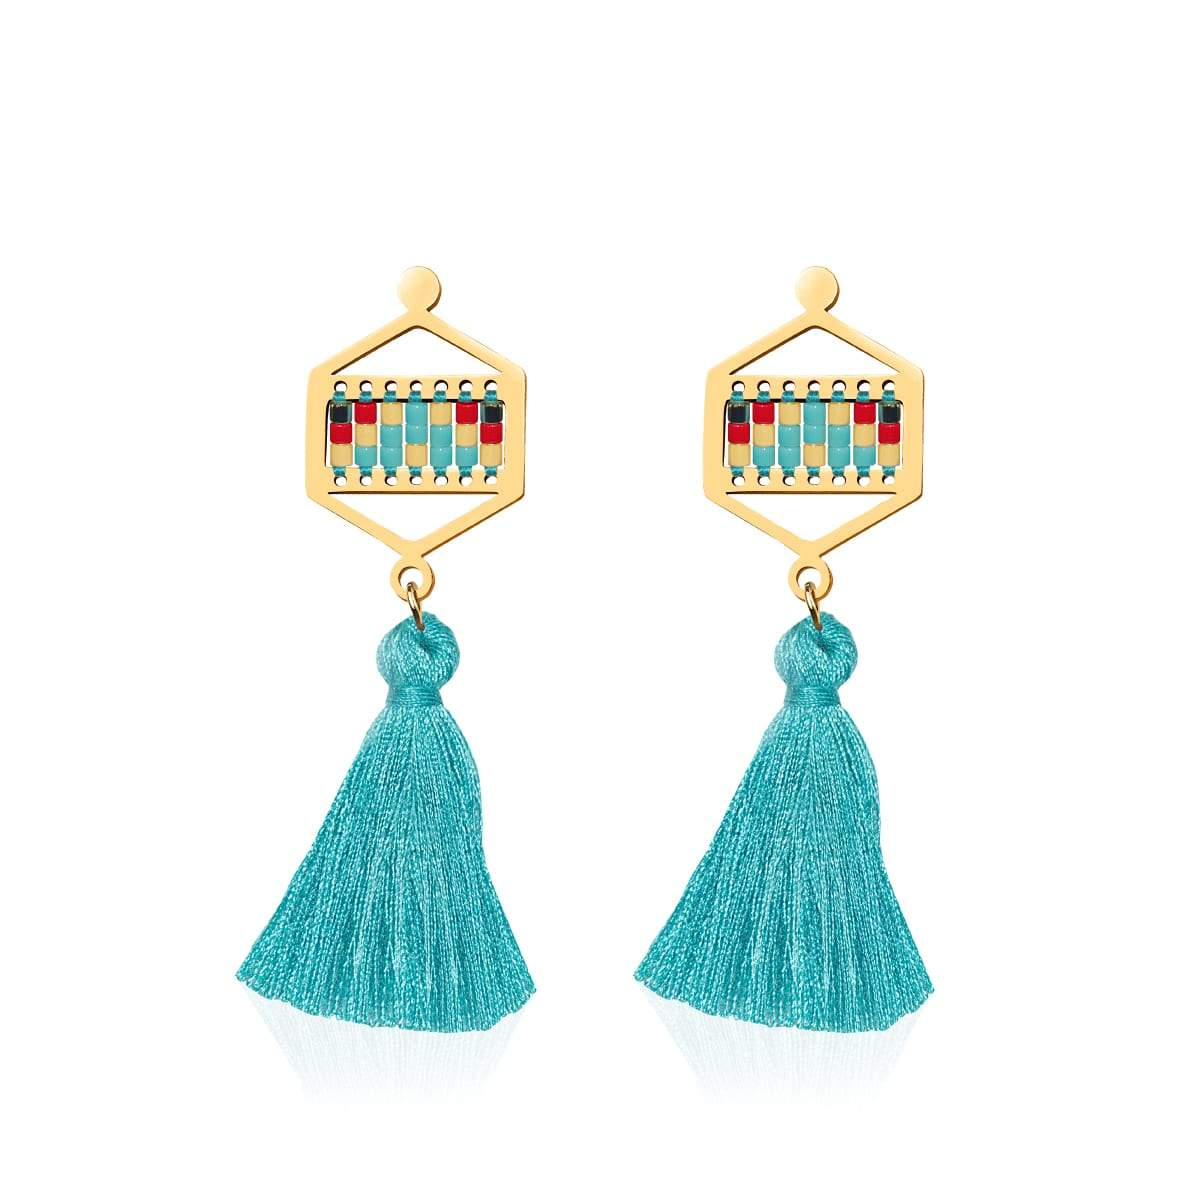 Palos Verdes Estates | 18k Gold | Boho Fringe Earrings